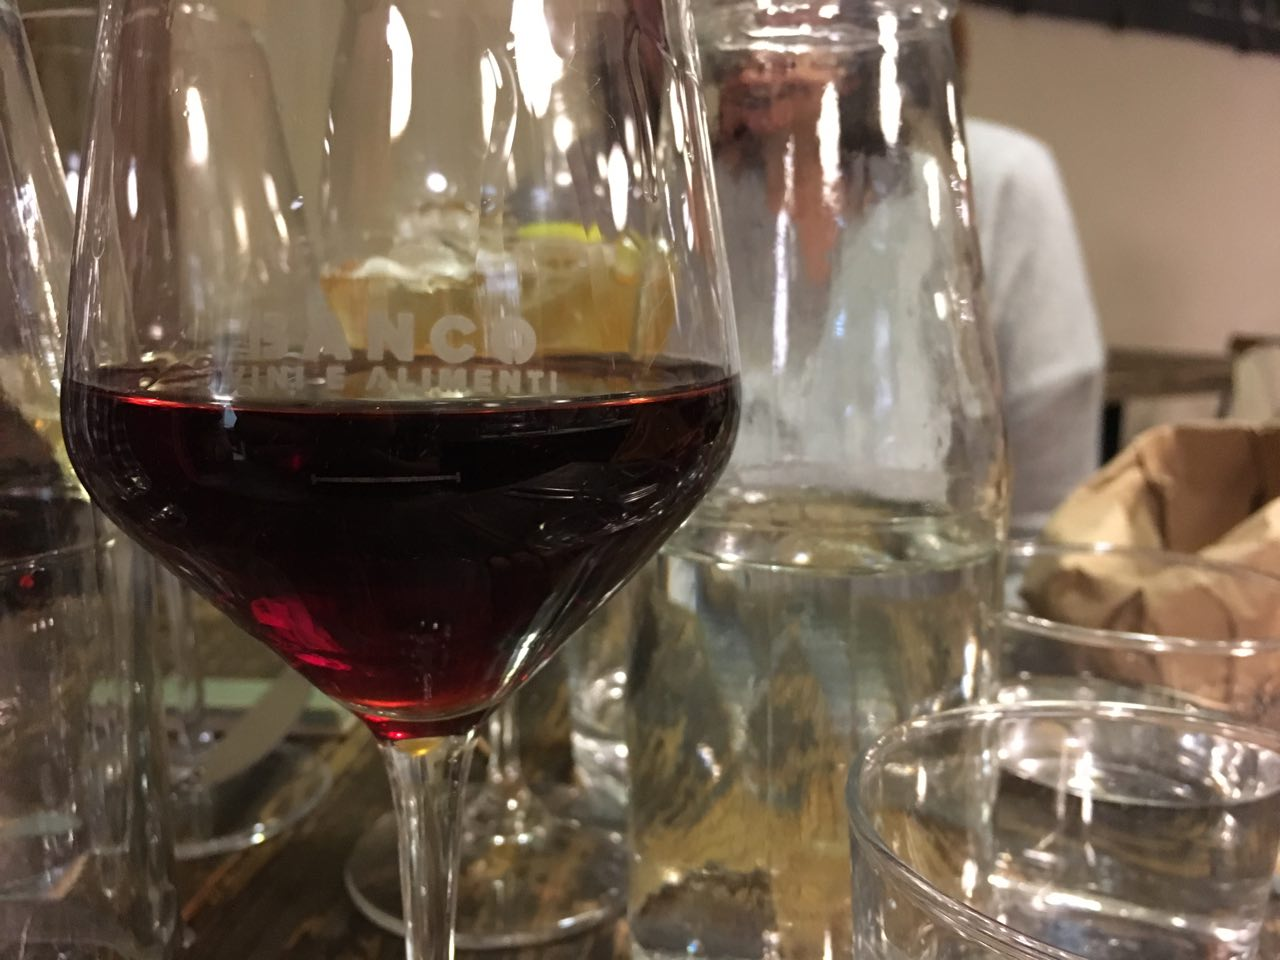 Grignolino red wine